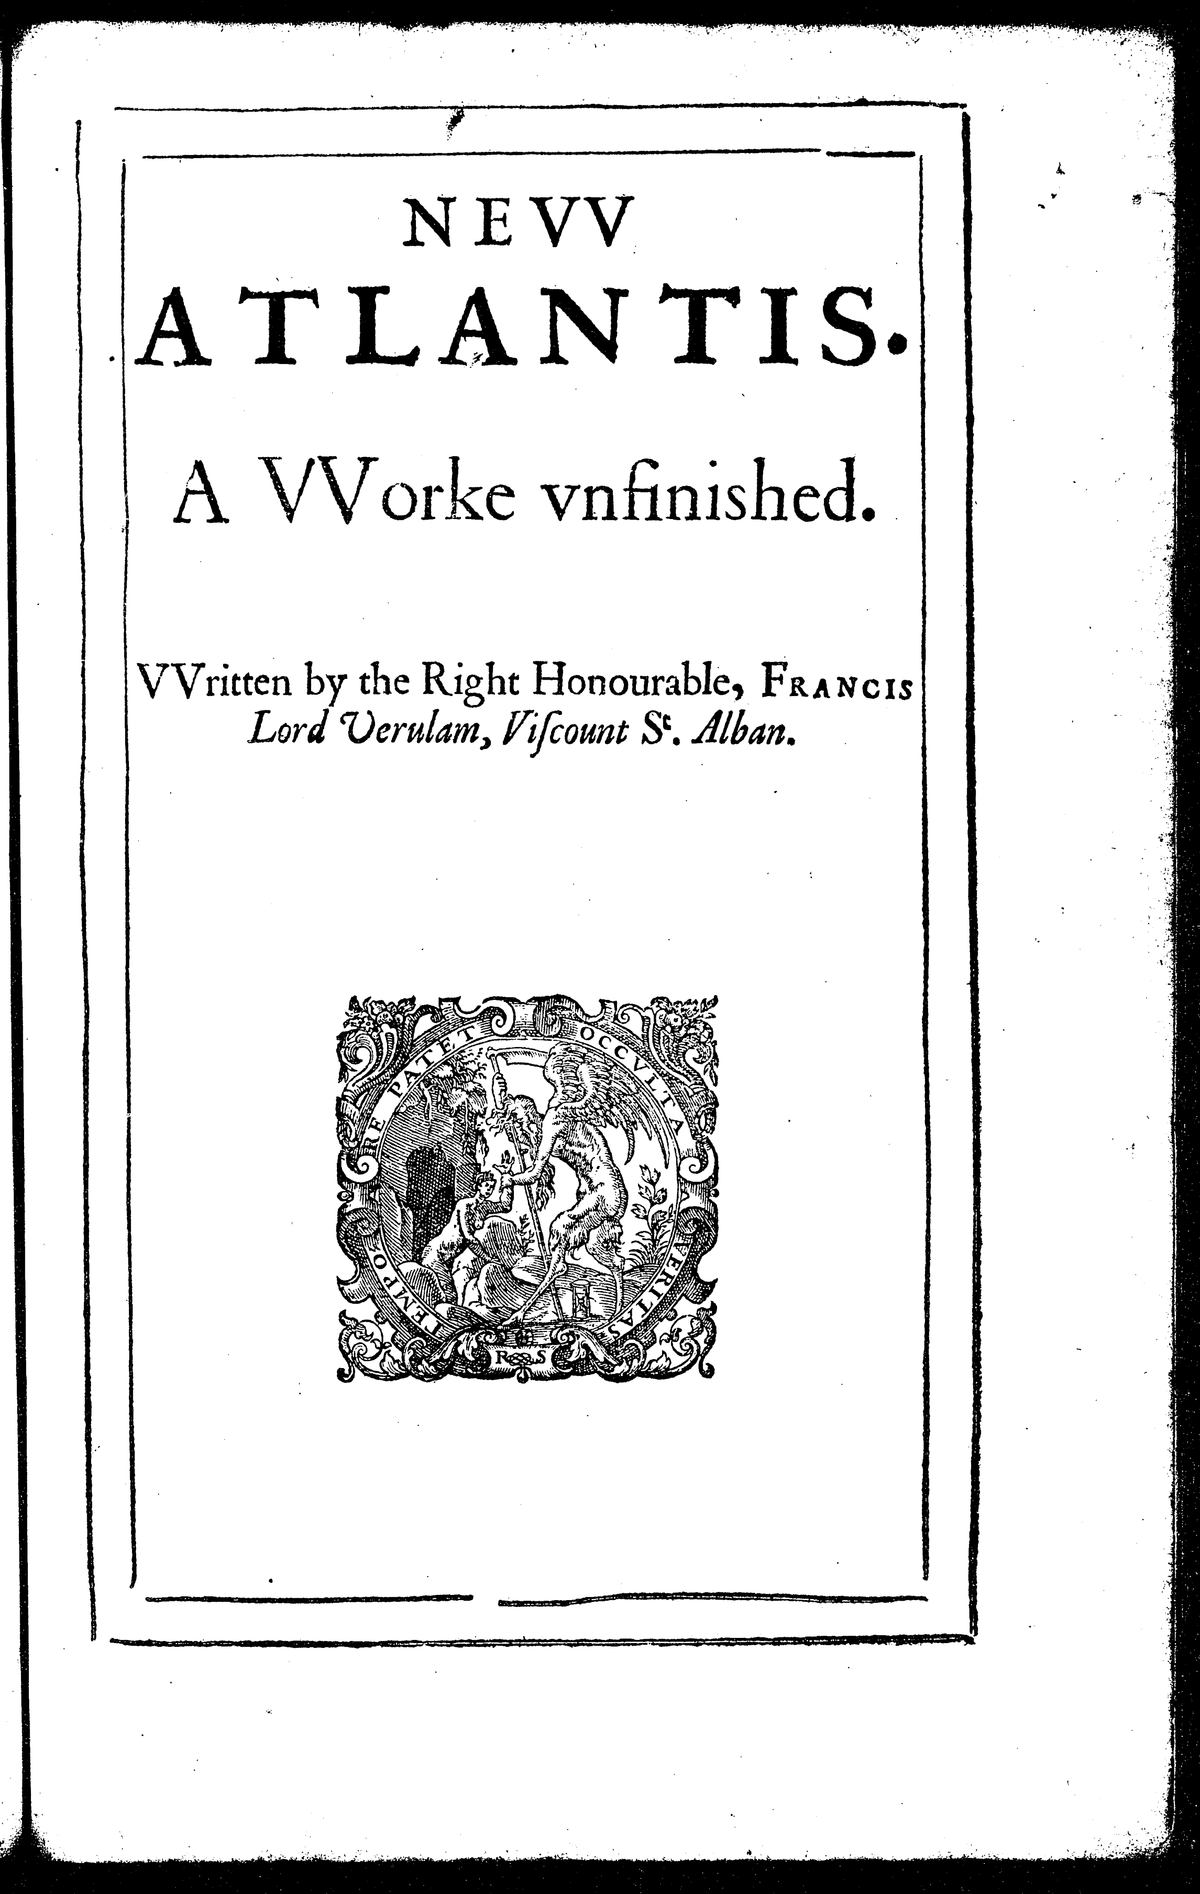 an analysis of new atlantis a utopian work by sir francis bacon The project gutenberg ebook of the new atlantis, by sir francis bacon revision to edition 11 and preparation of html version by william  work stop here it .